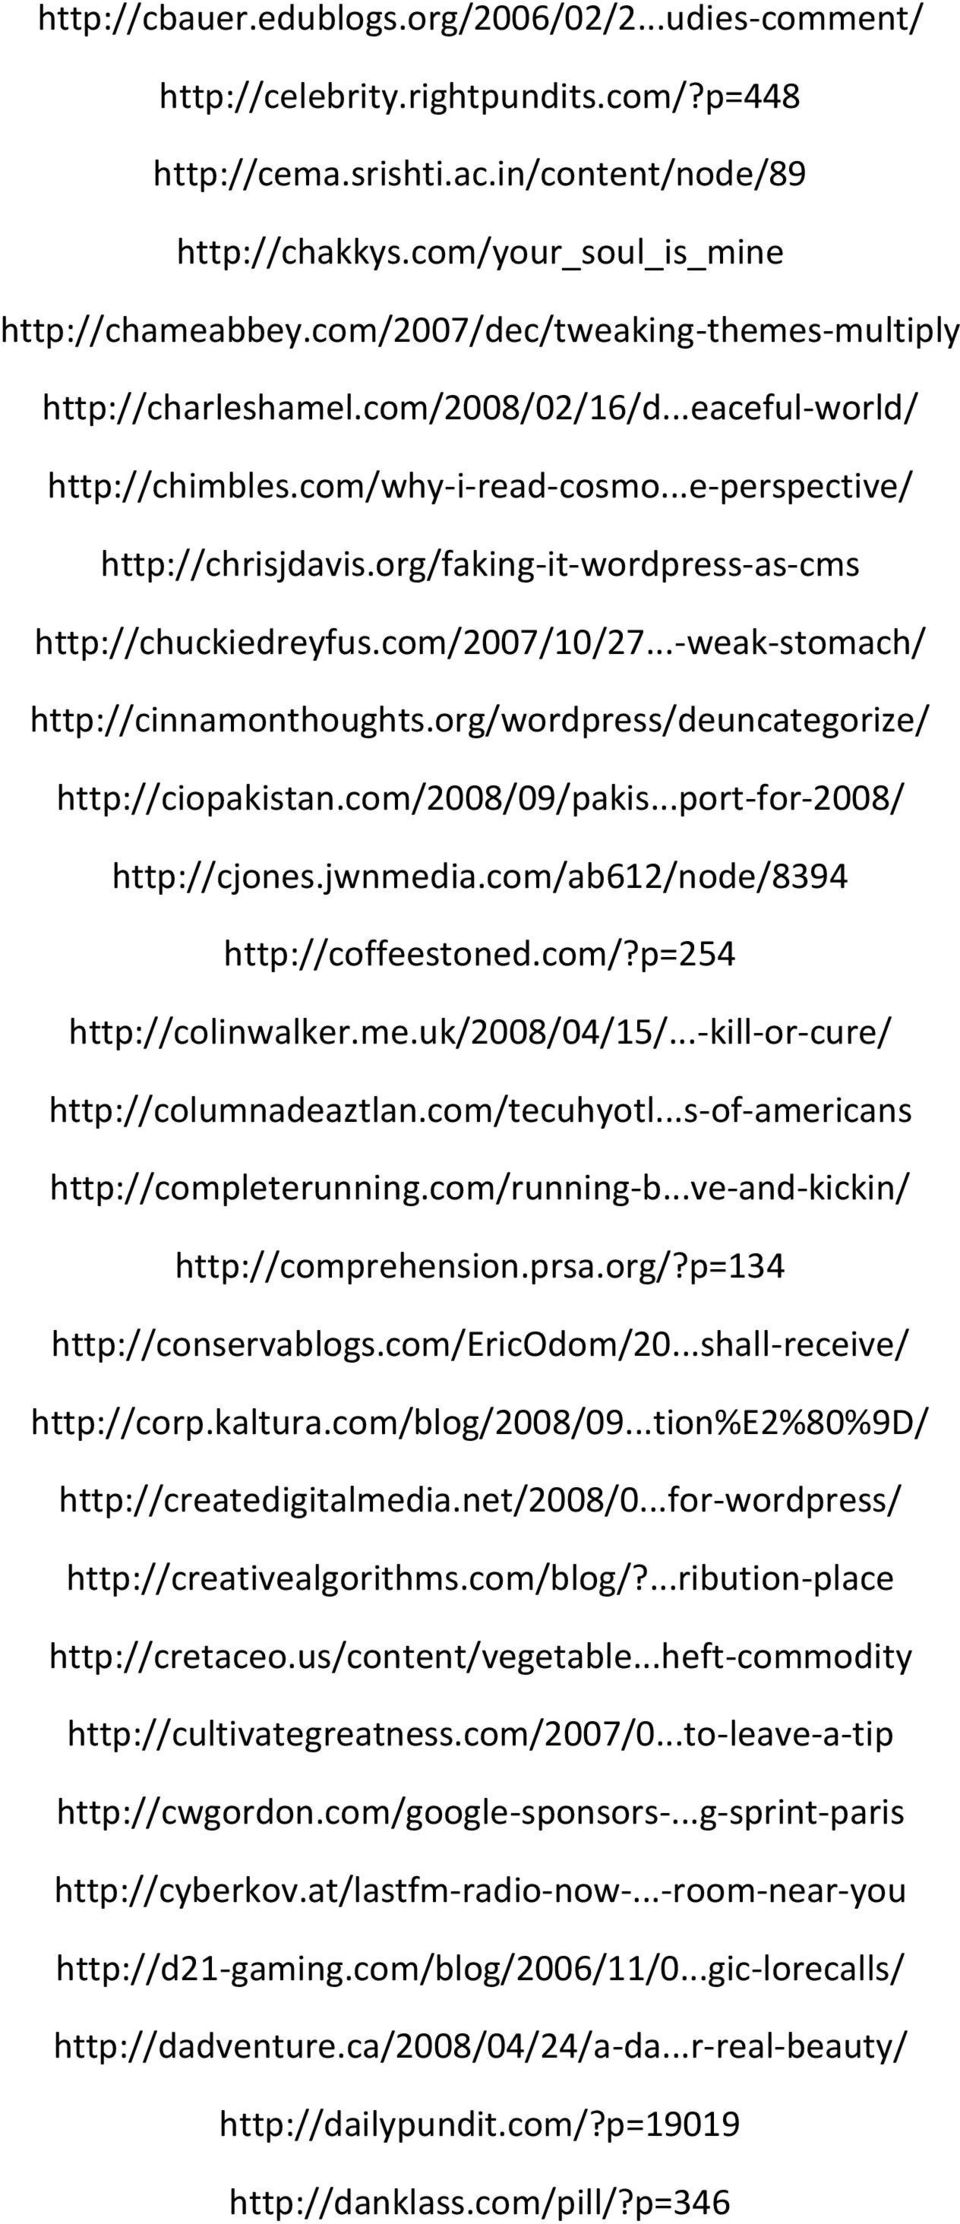 org/faking-it-wordpress-as-cms http://chuckiedreyfus.com/2007/10/27...-weak-stomach/ http://cinnamonthoughts.org/wordpress/deuncategorize/ http://ciopakistan.com/2008/09/pakis.